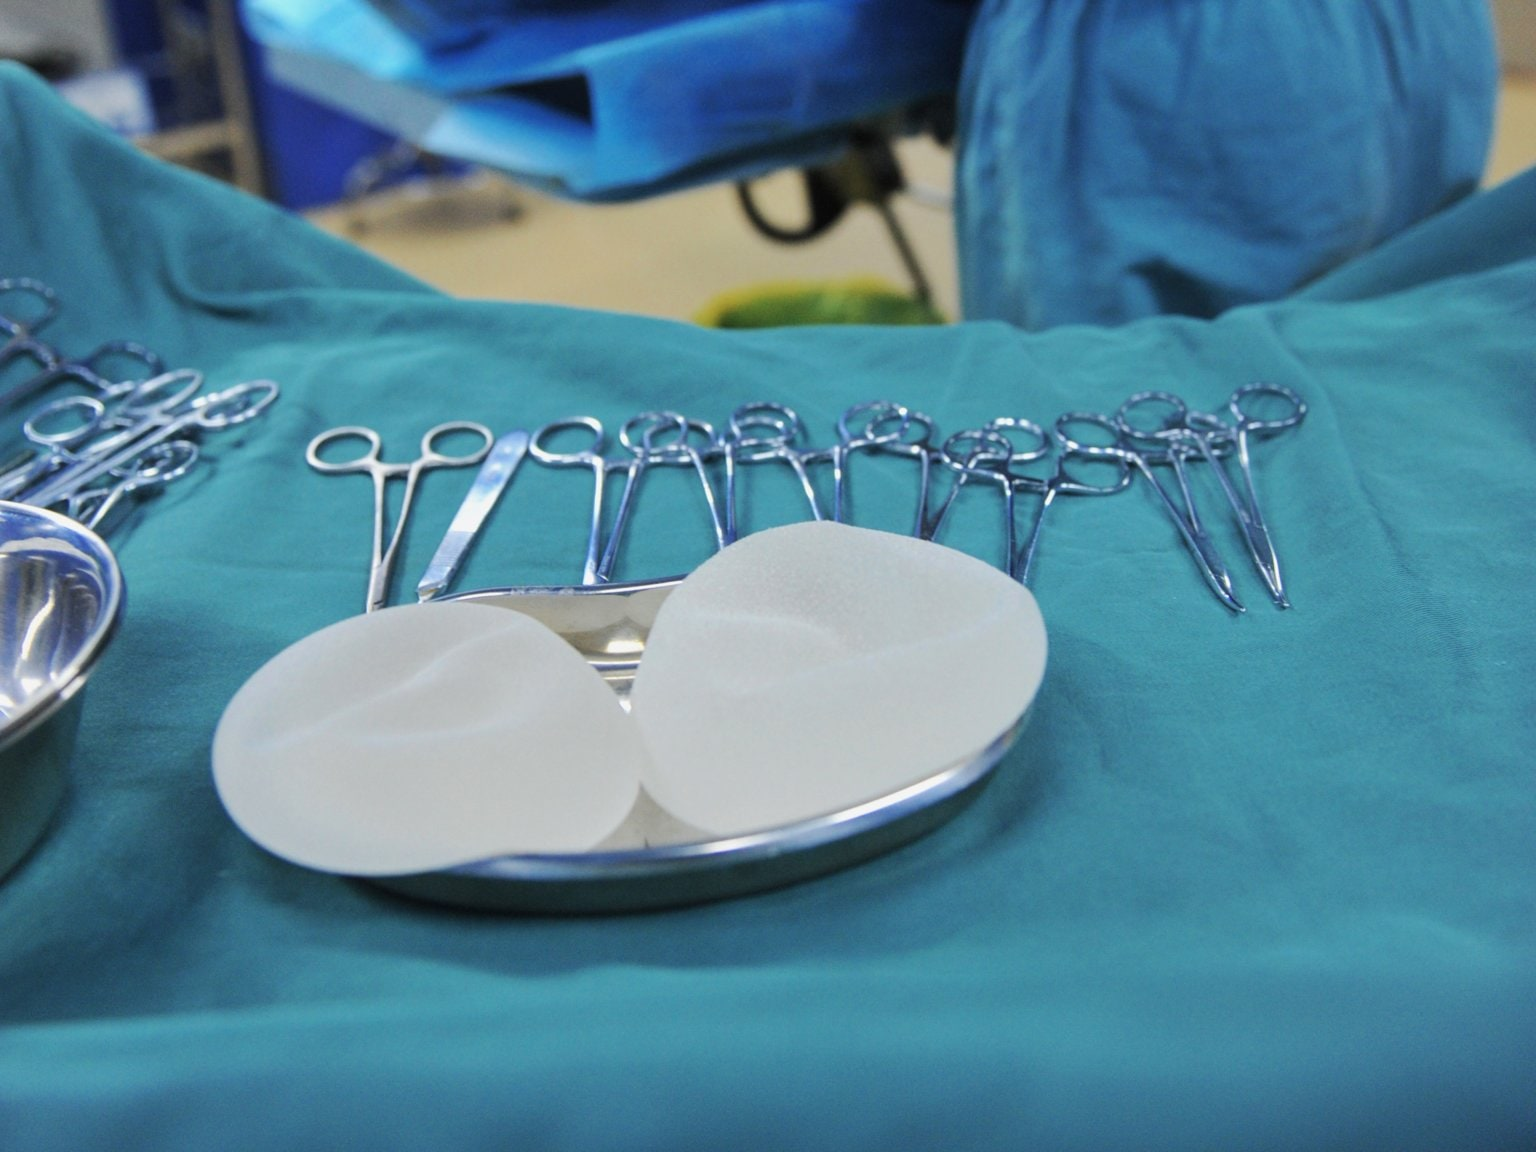 FDA reviews safety of Breast Implants after link to rare cancer raises concerns